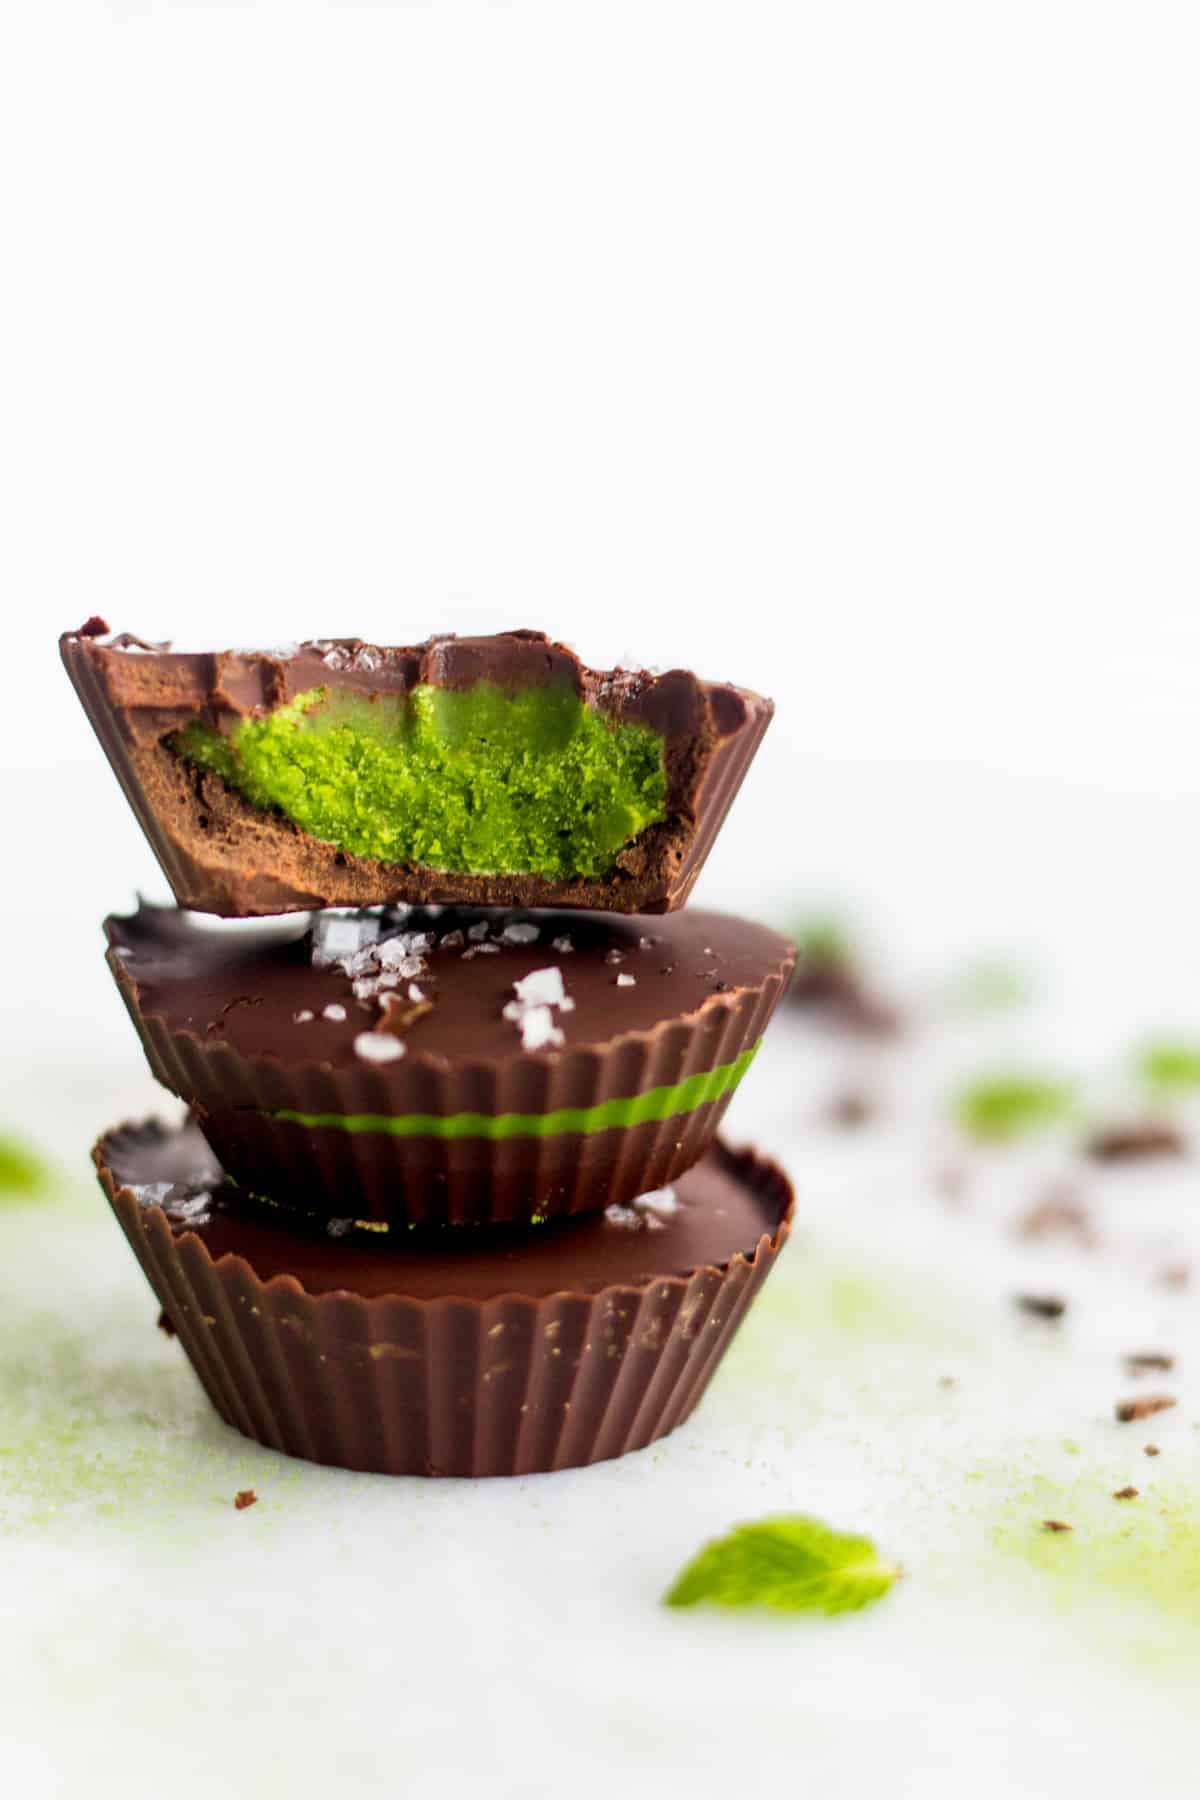 3 Collagen Mint Matcha Coconut Butter Cups stacked on top of each other